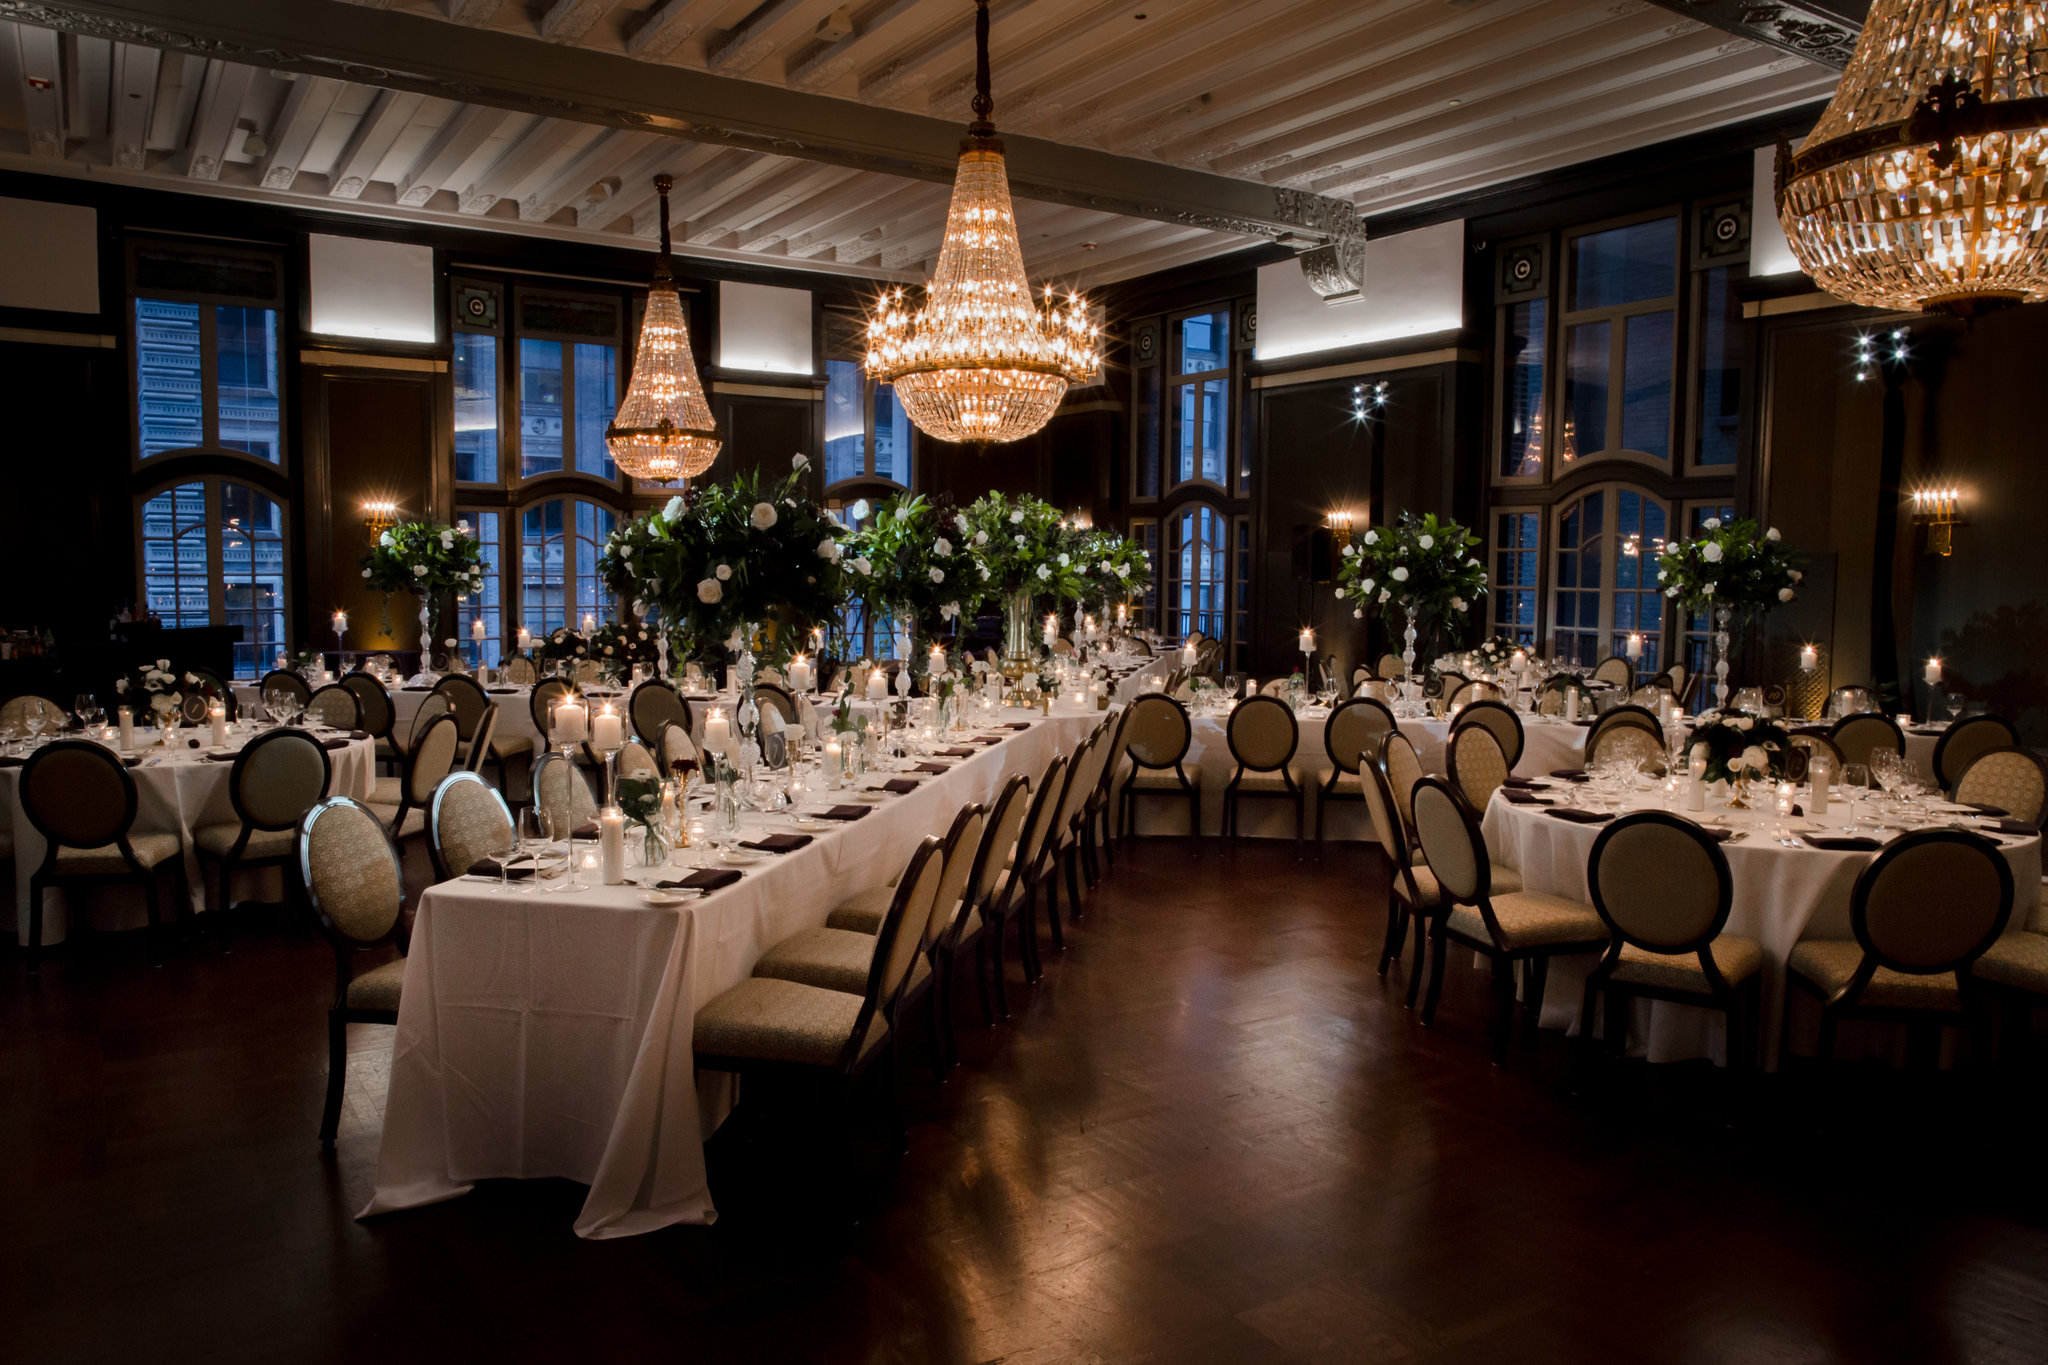 The dining room layout was a unique x shape created with long tables. The bride and groom were seated at a sweetheart table decorated with cascading florals.